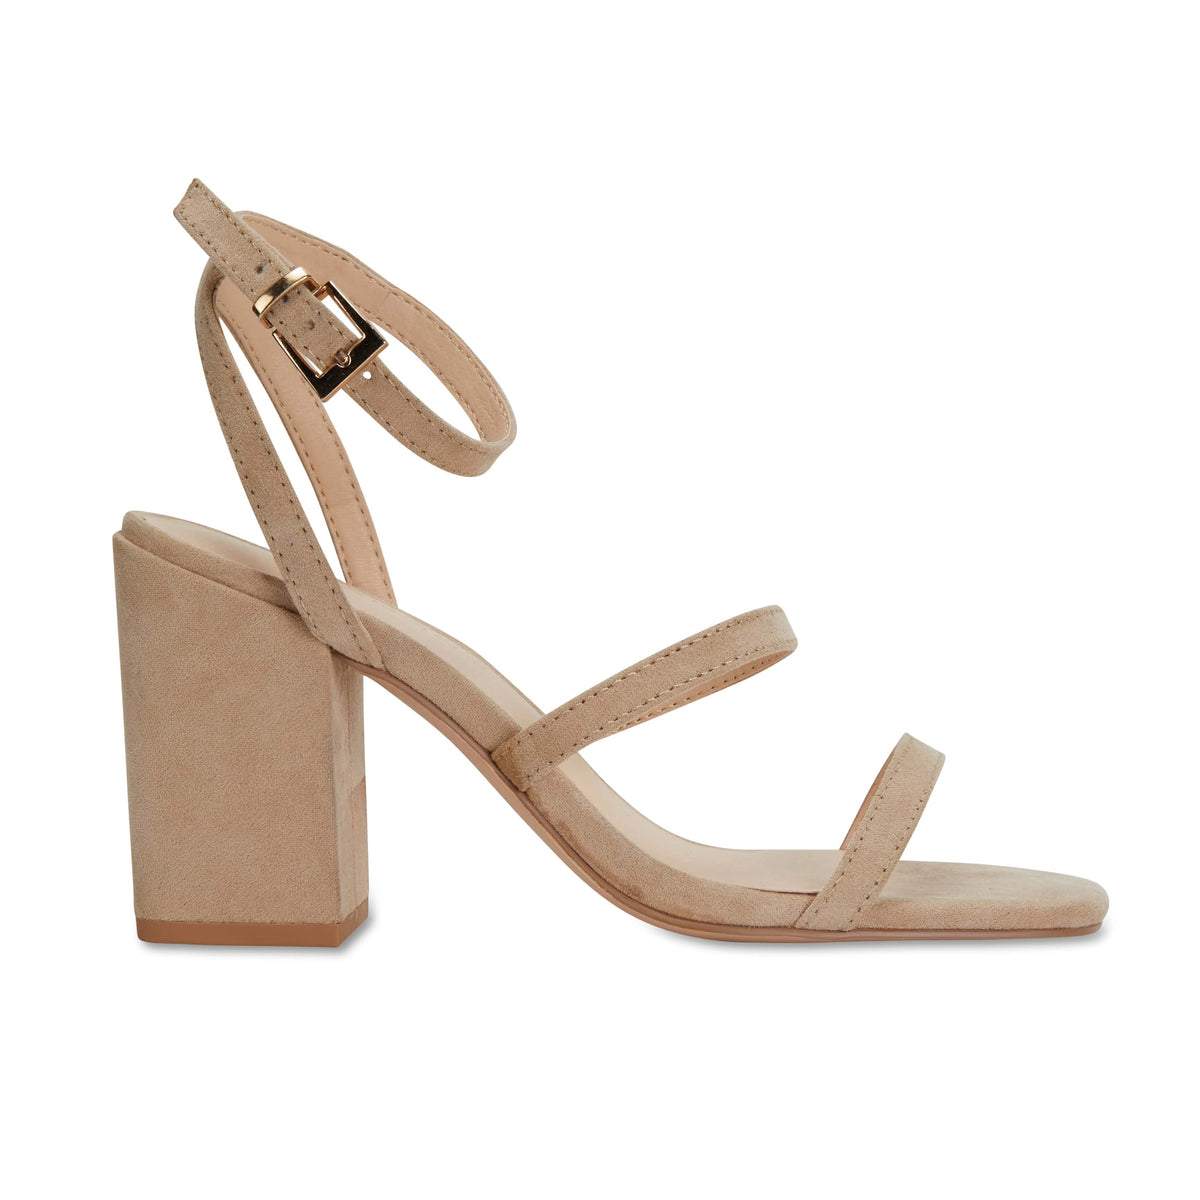 Gery Heel in Natural Suede